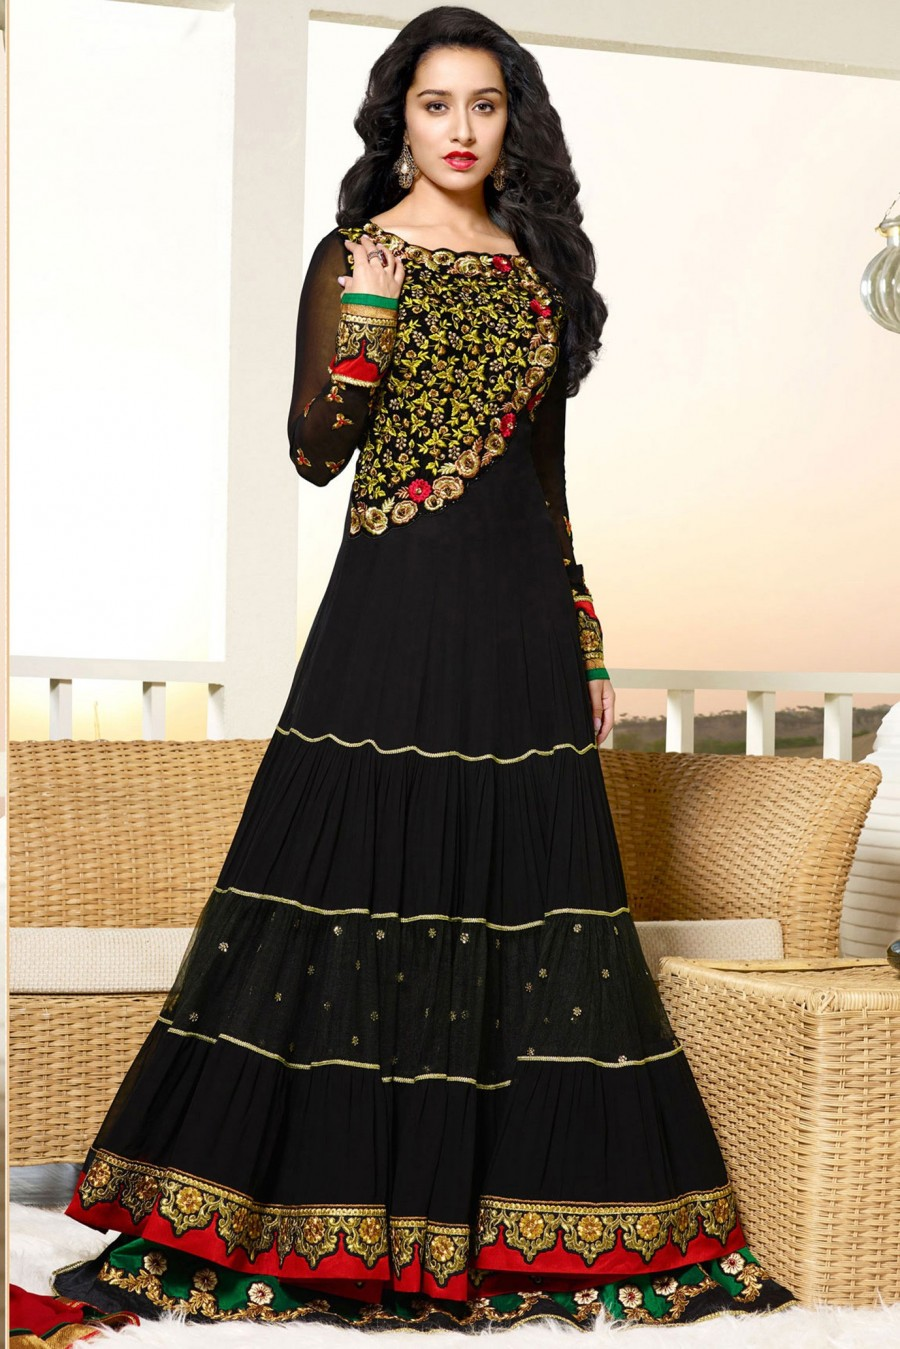 Buy Shraddha Kapoor Magical Black Velvet Georgette Salwar Suit with Pearl Work with Dupatta Online